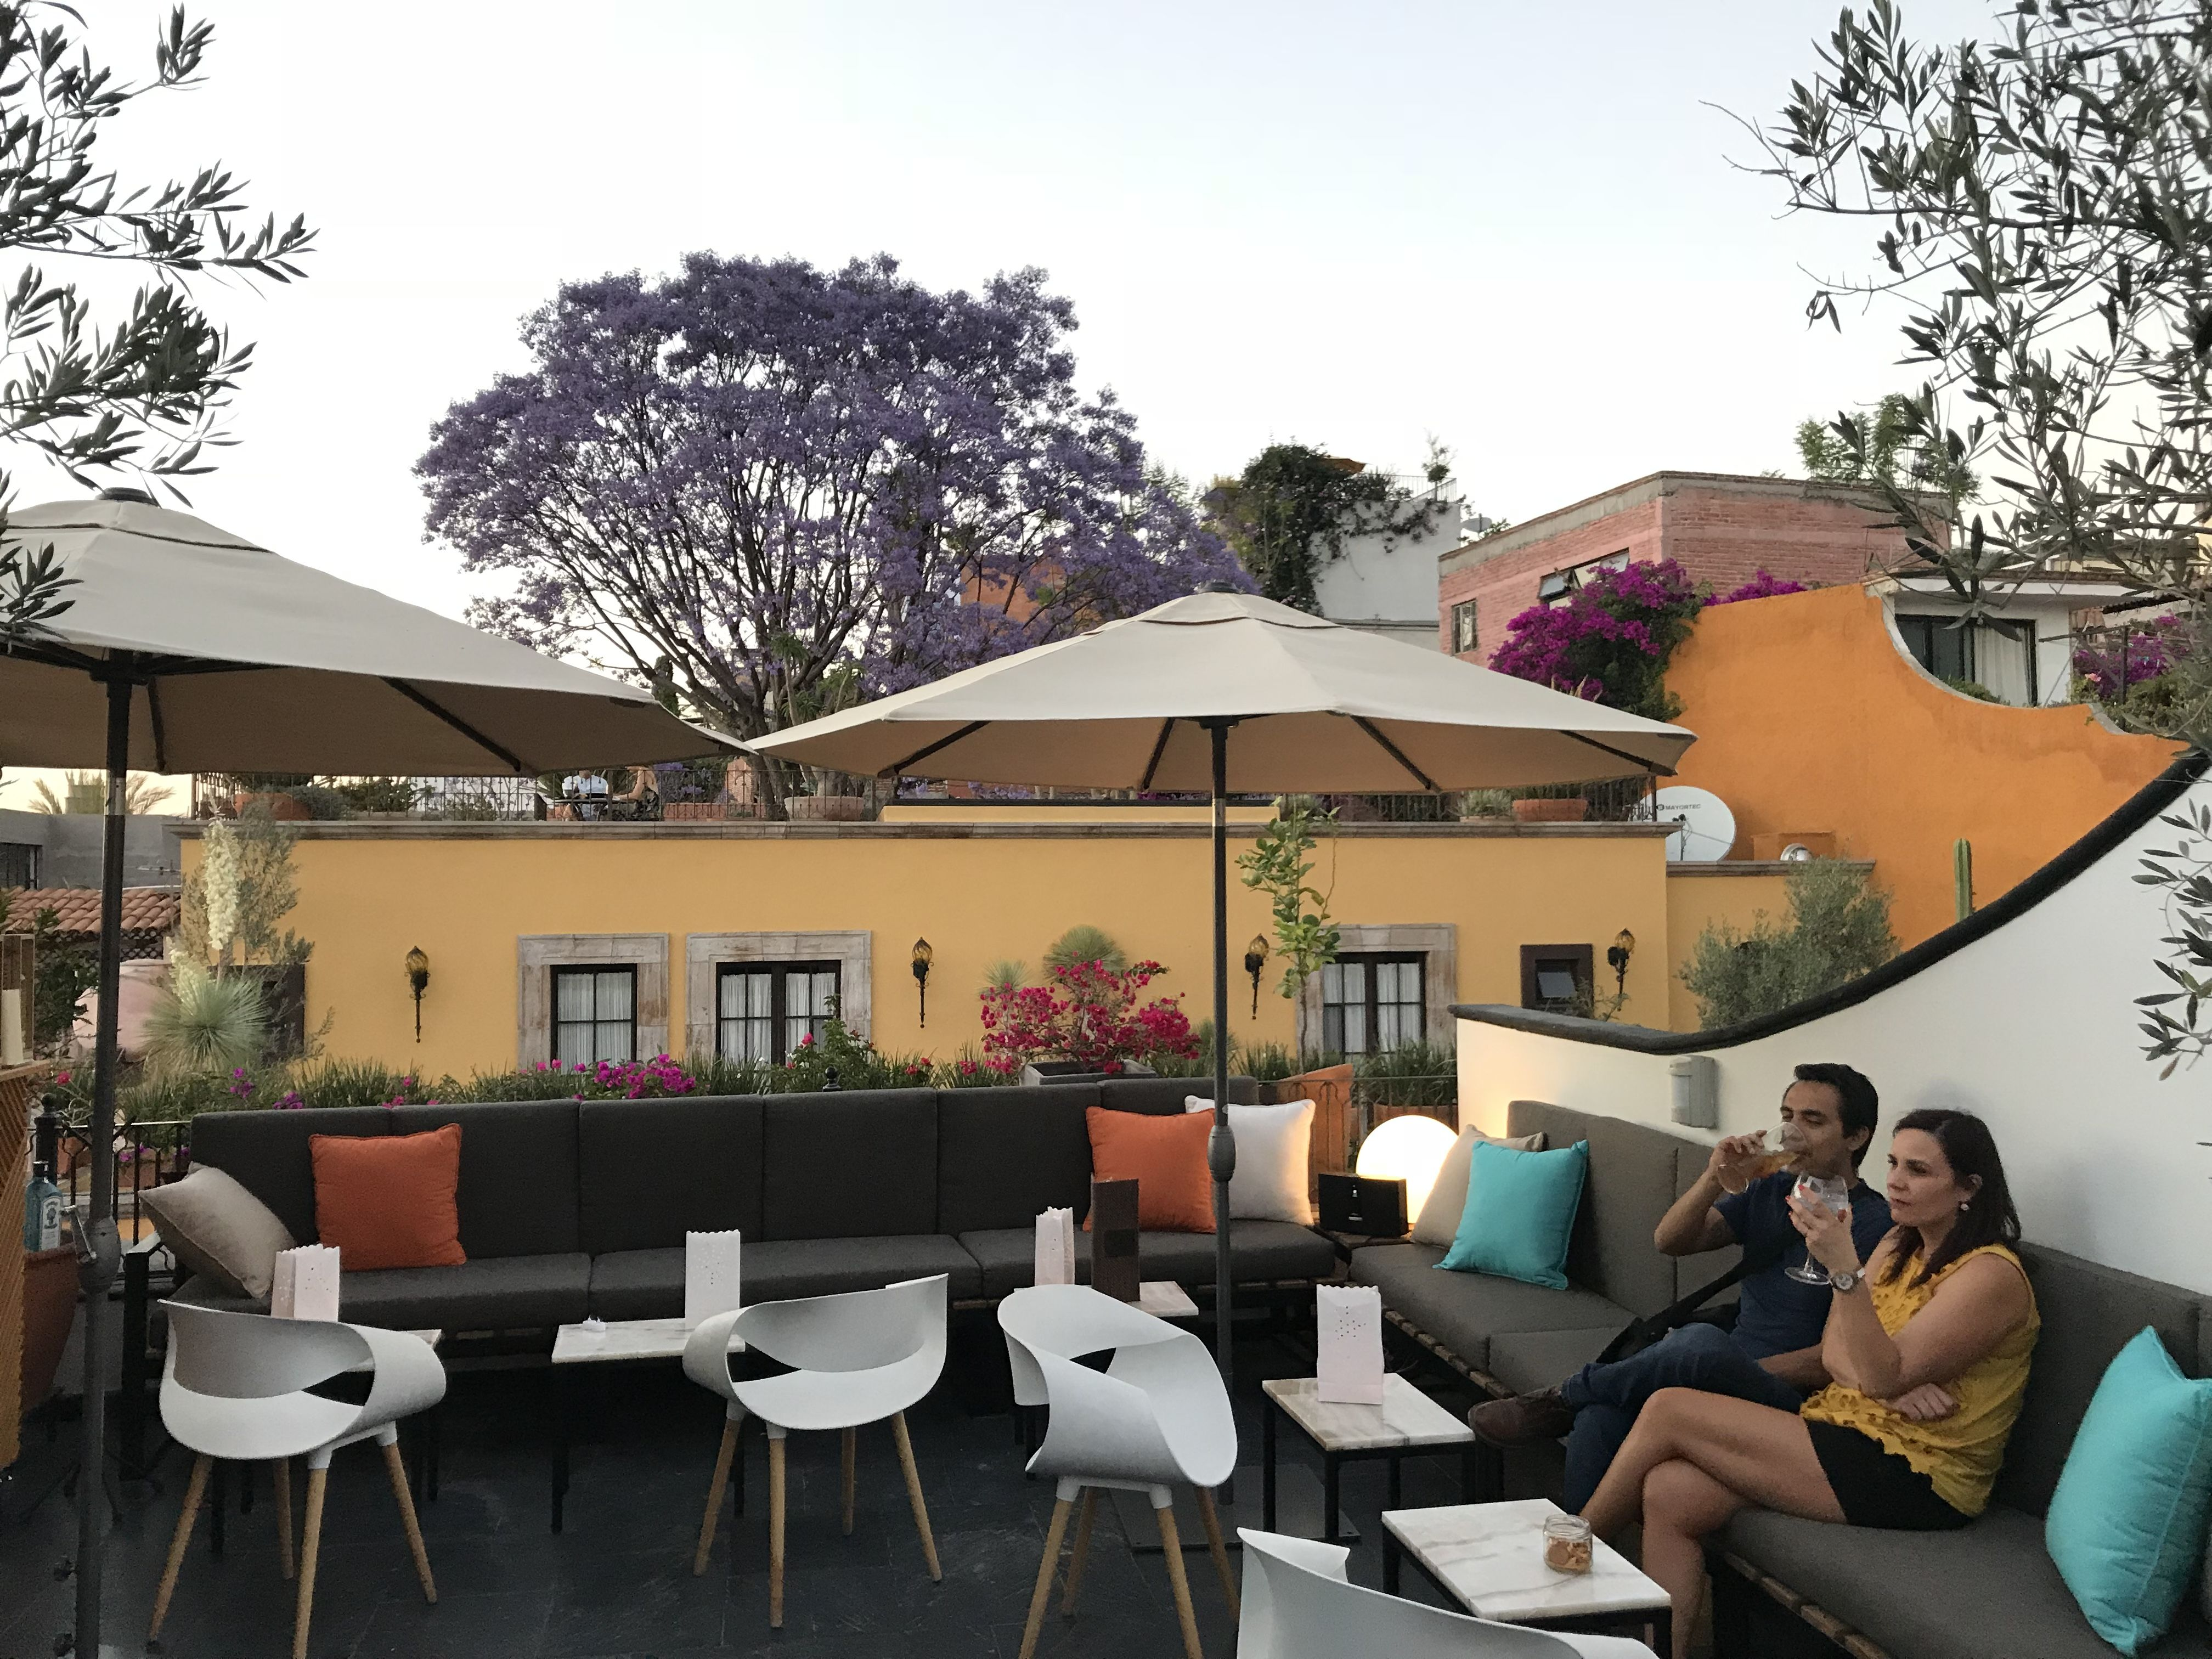 Casa Nostra Opened In February 2018 This Is A Wonderful Addition To The Dining Scene For Mediterranean Cuisine It Rooftop Dining Rooftop Patio Rooftop Restaurant